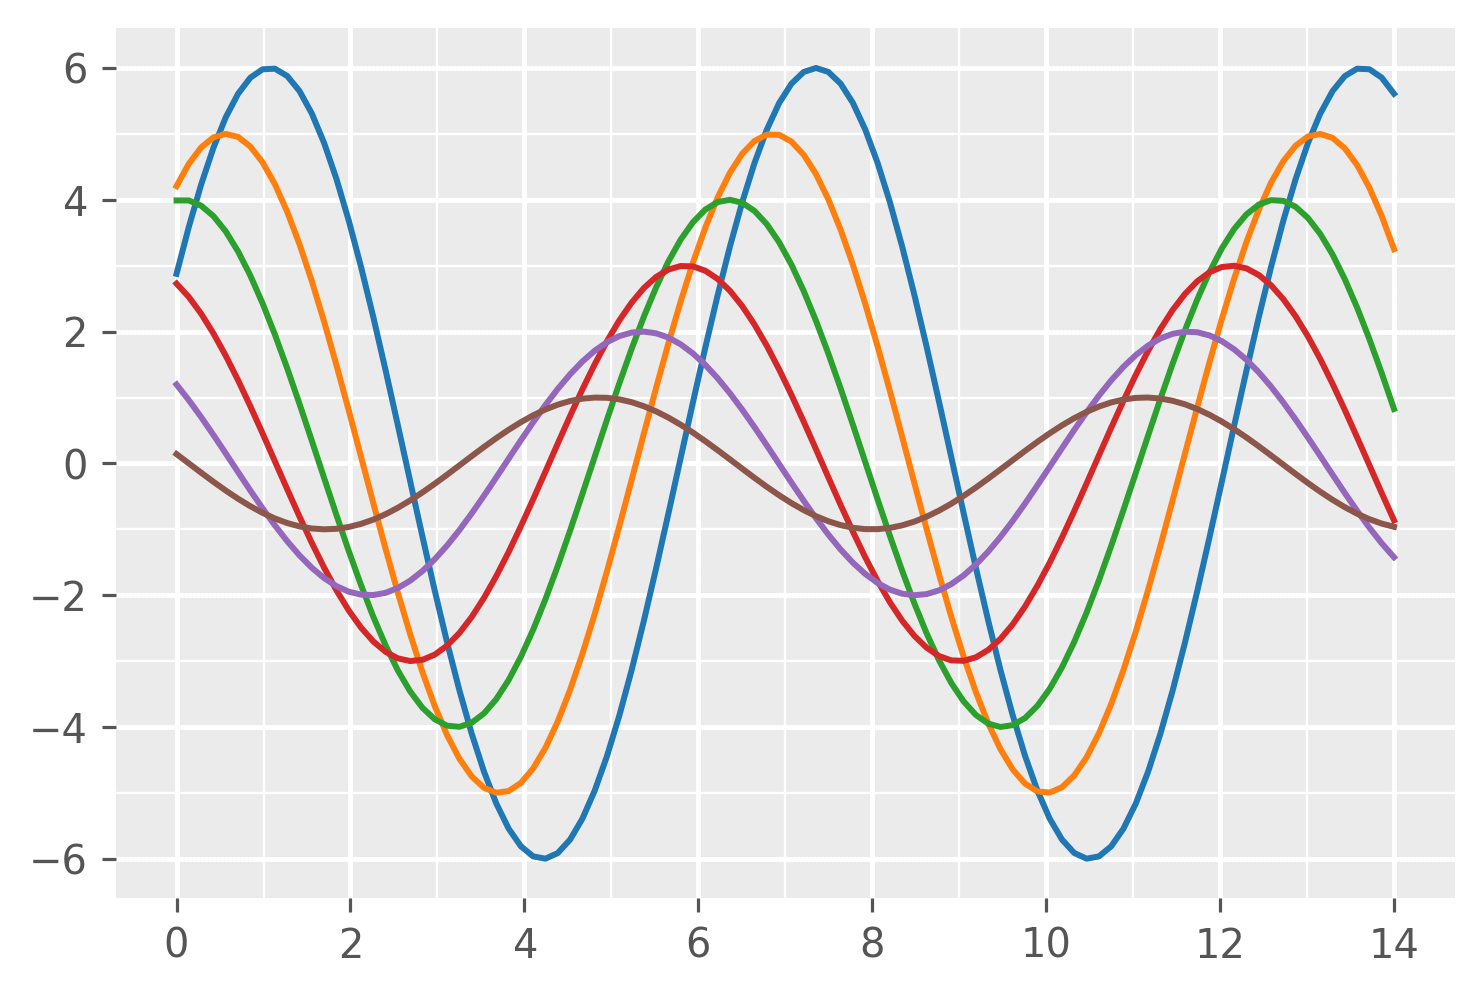 Customizing the Grid in Matplotlib